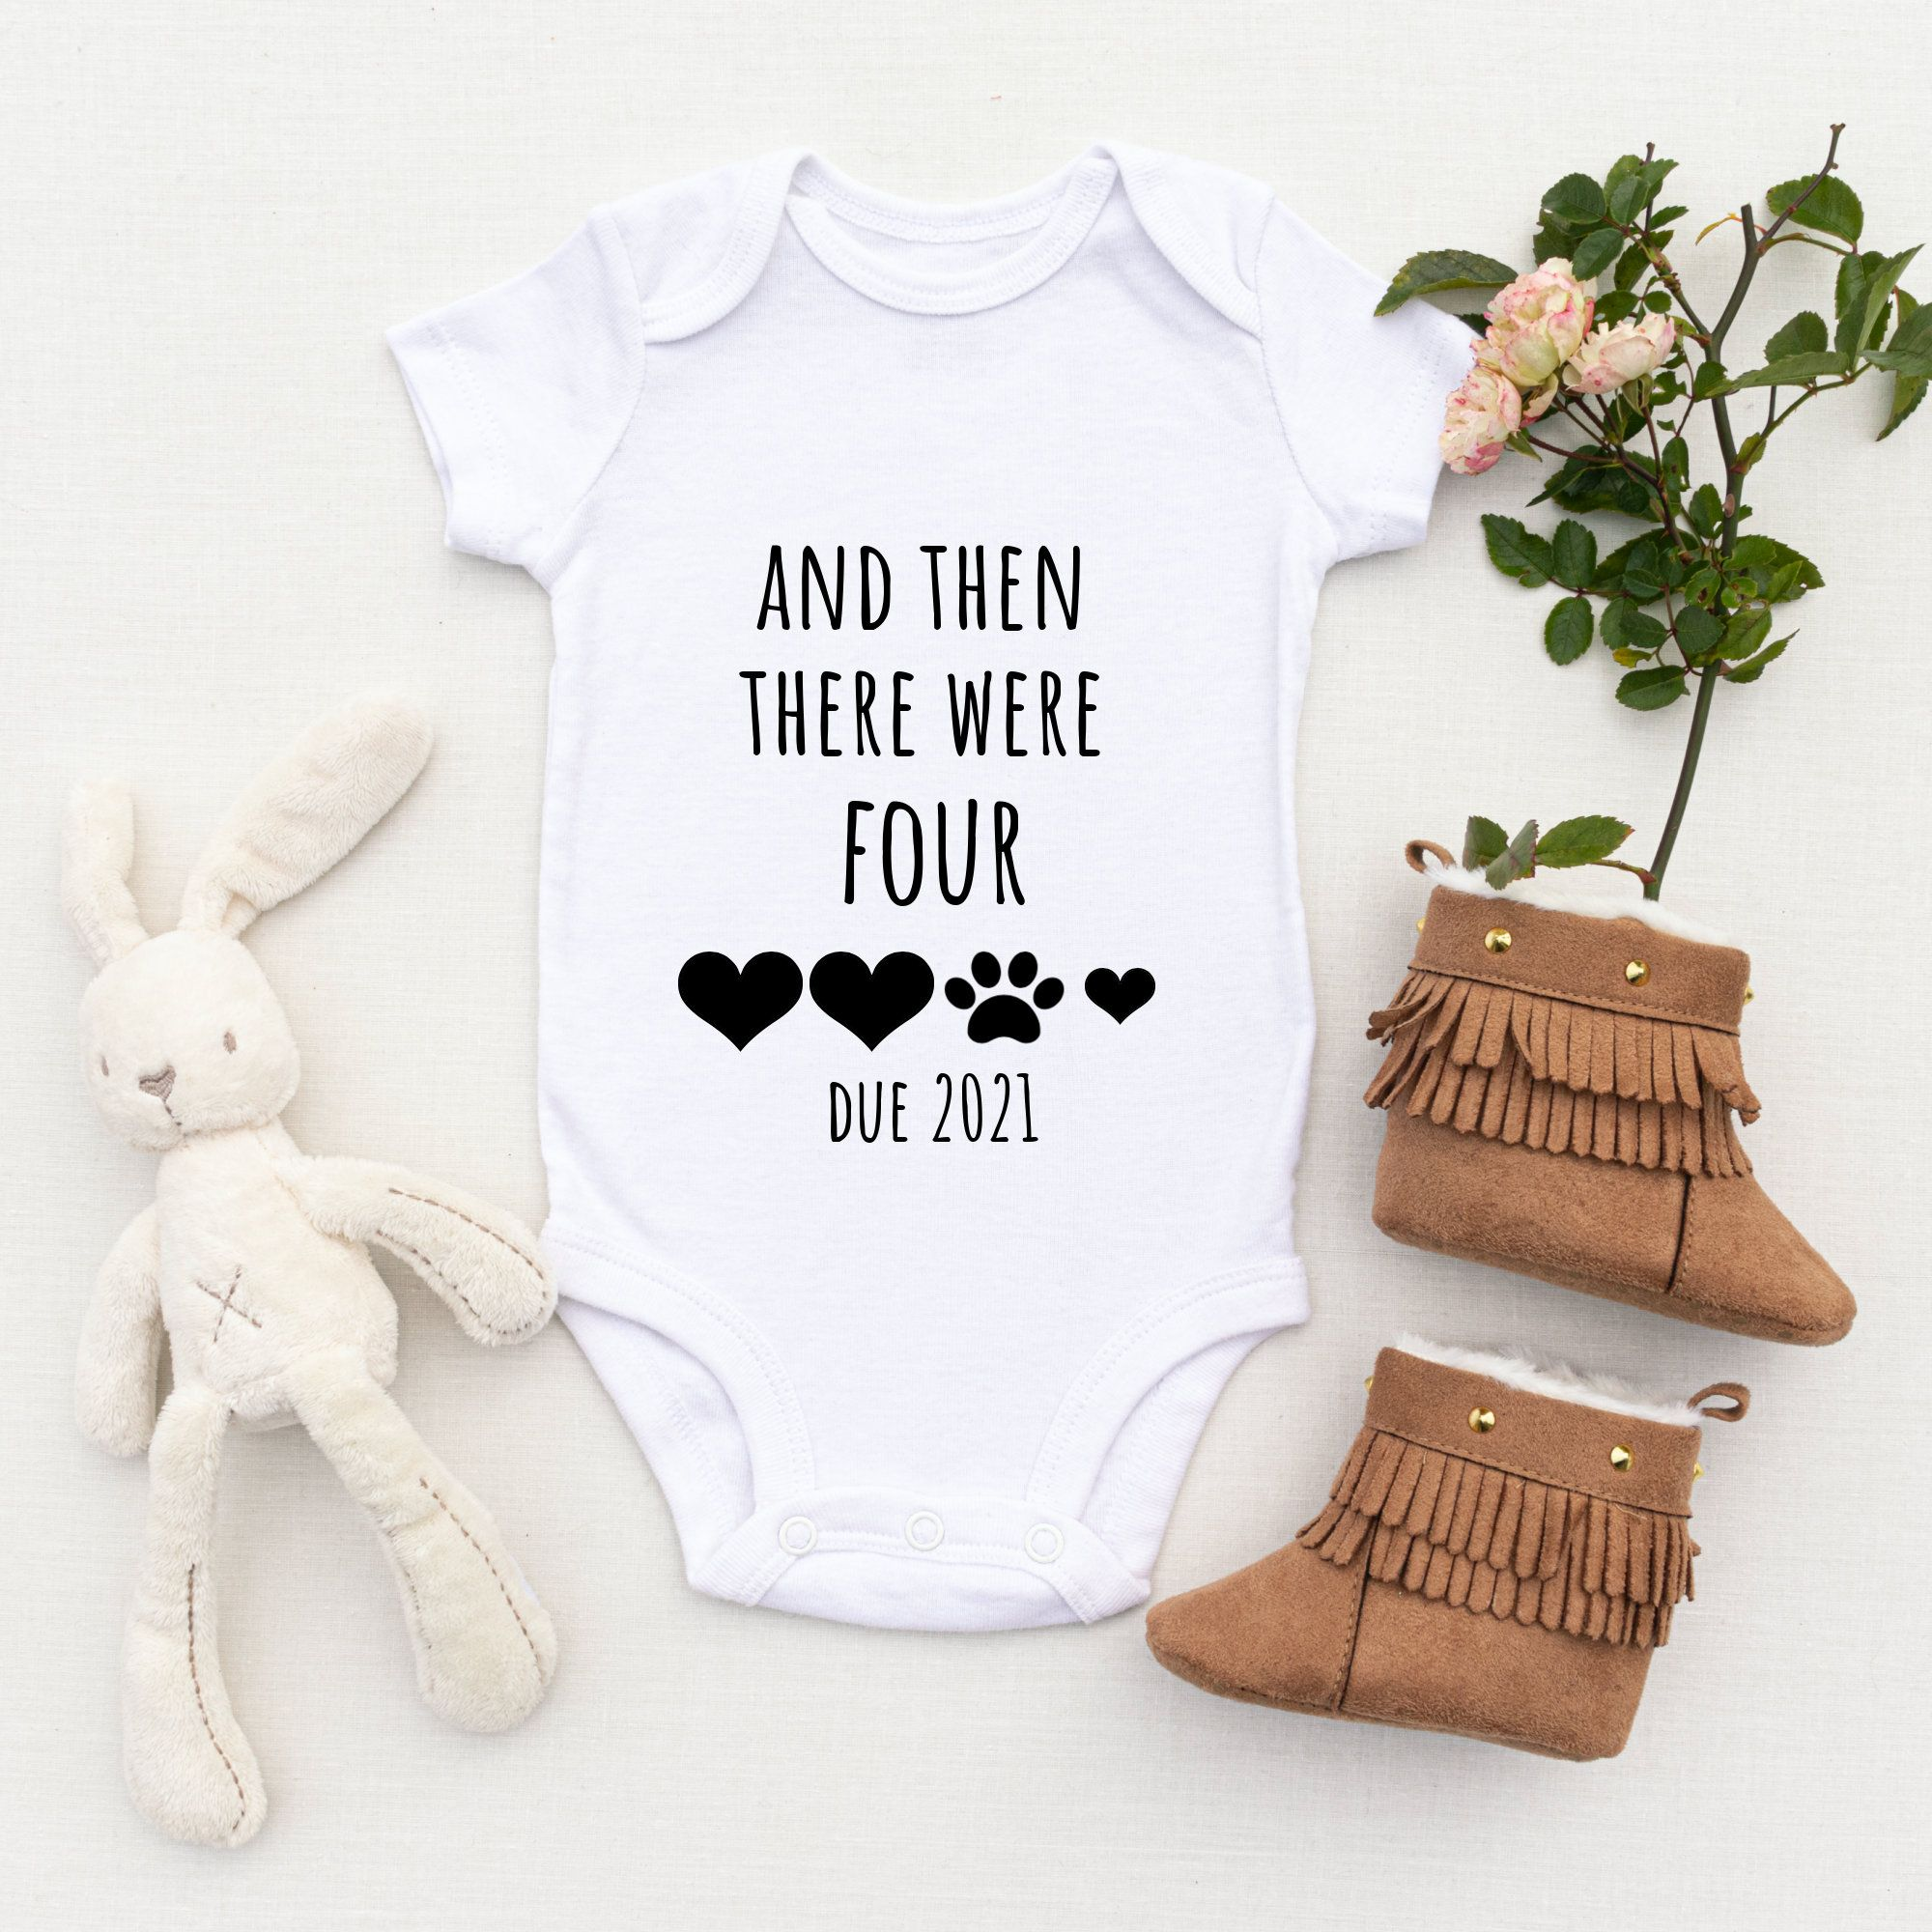 This is my First Christmas Ever Vest Winter Baby Christmas Baby Grow December Baby, Gold Baby Shower Baby Announcement New Baby Outfit